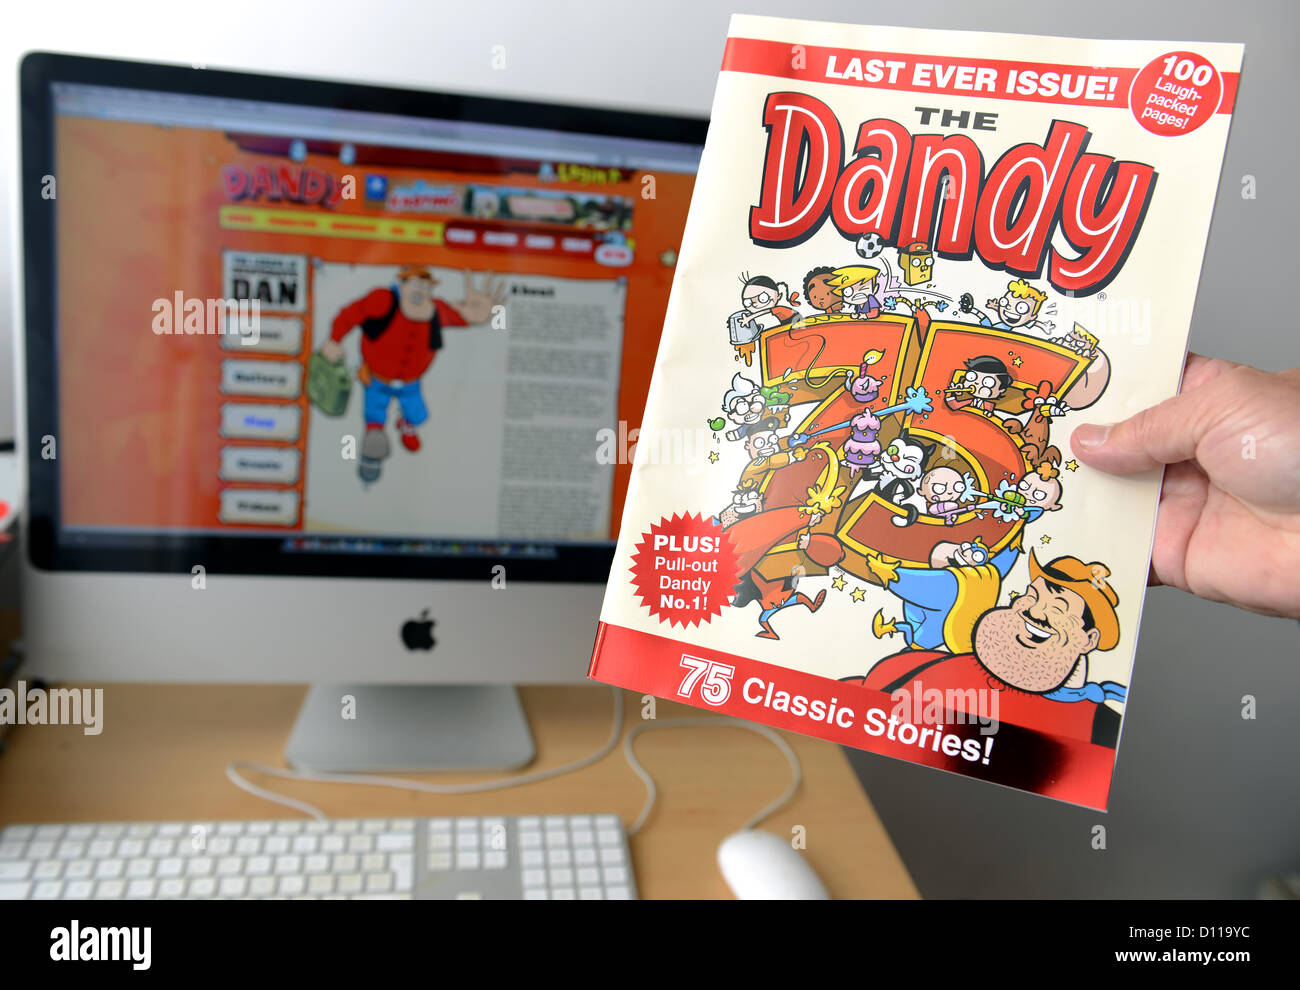 The last ever print edition of The Dandy children's comic, after 75 years The Dandy will be online only, UK - Stock Image